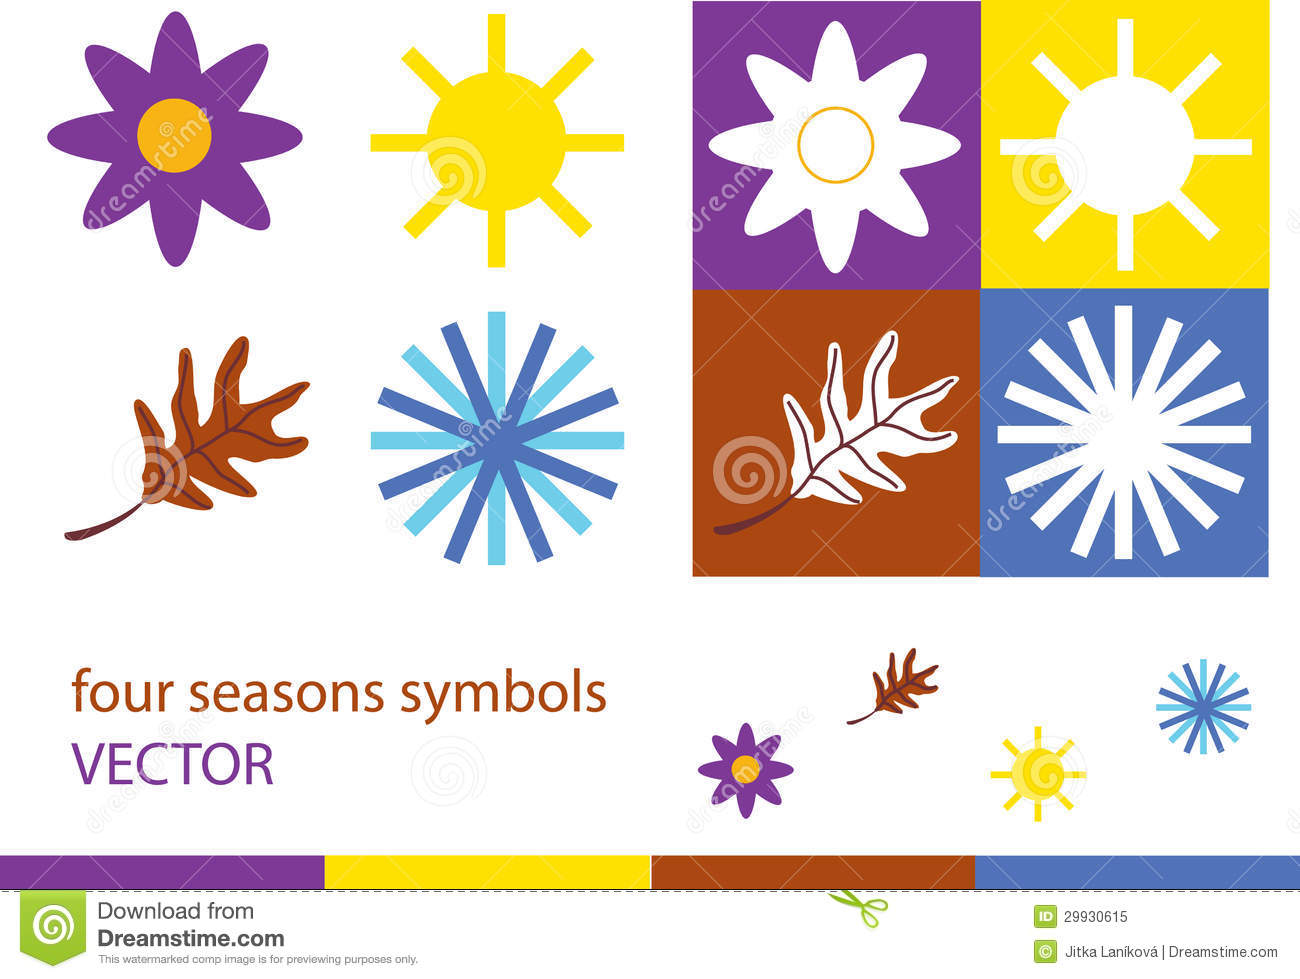 Set of four seasons symbols royalty free stock photo image 29930615 - Autumn plowing time all set for winter ...